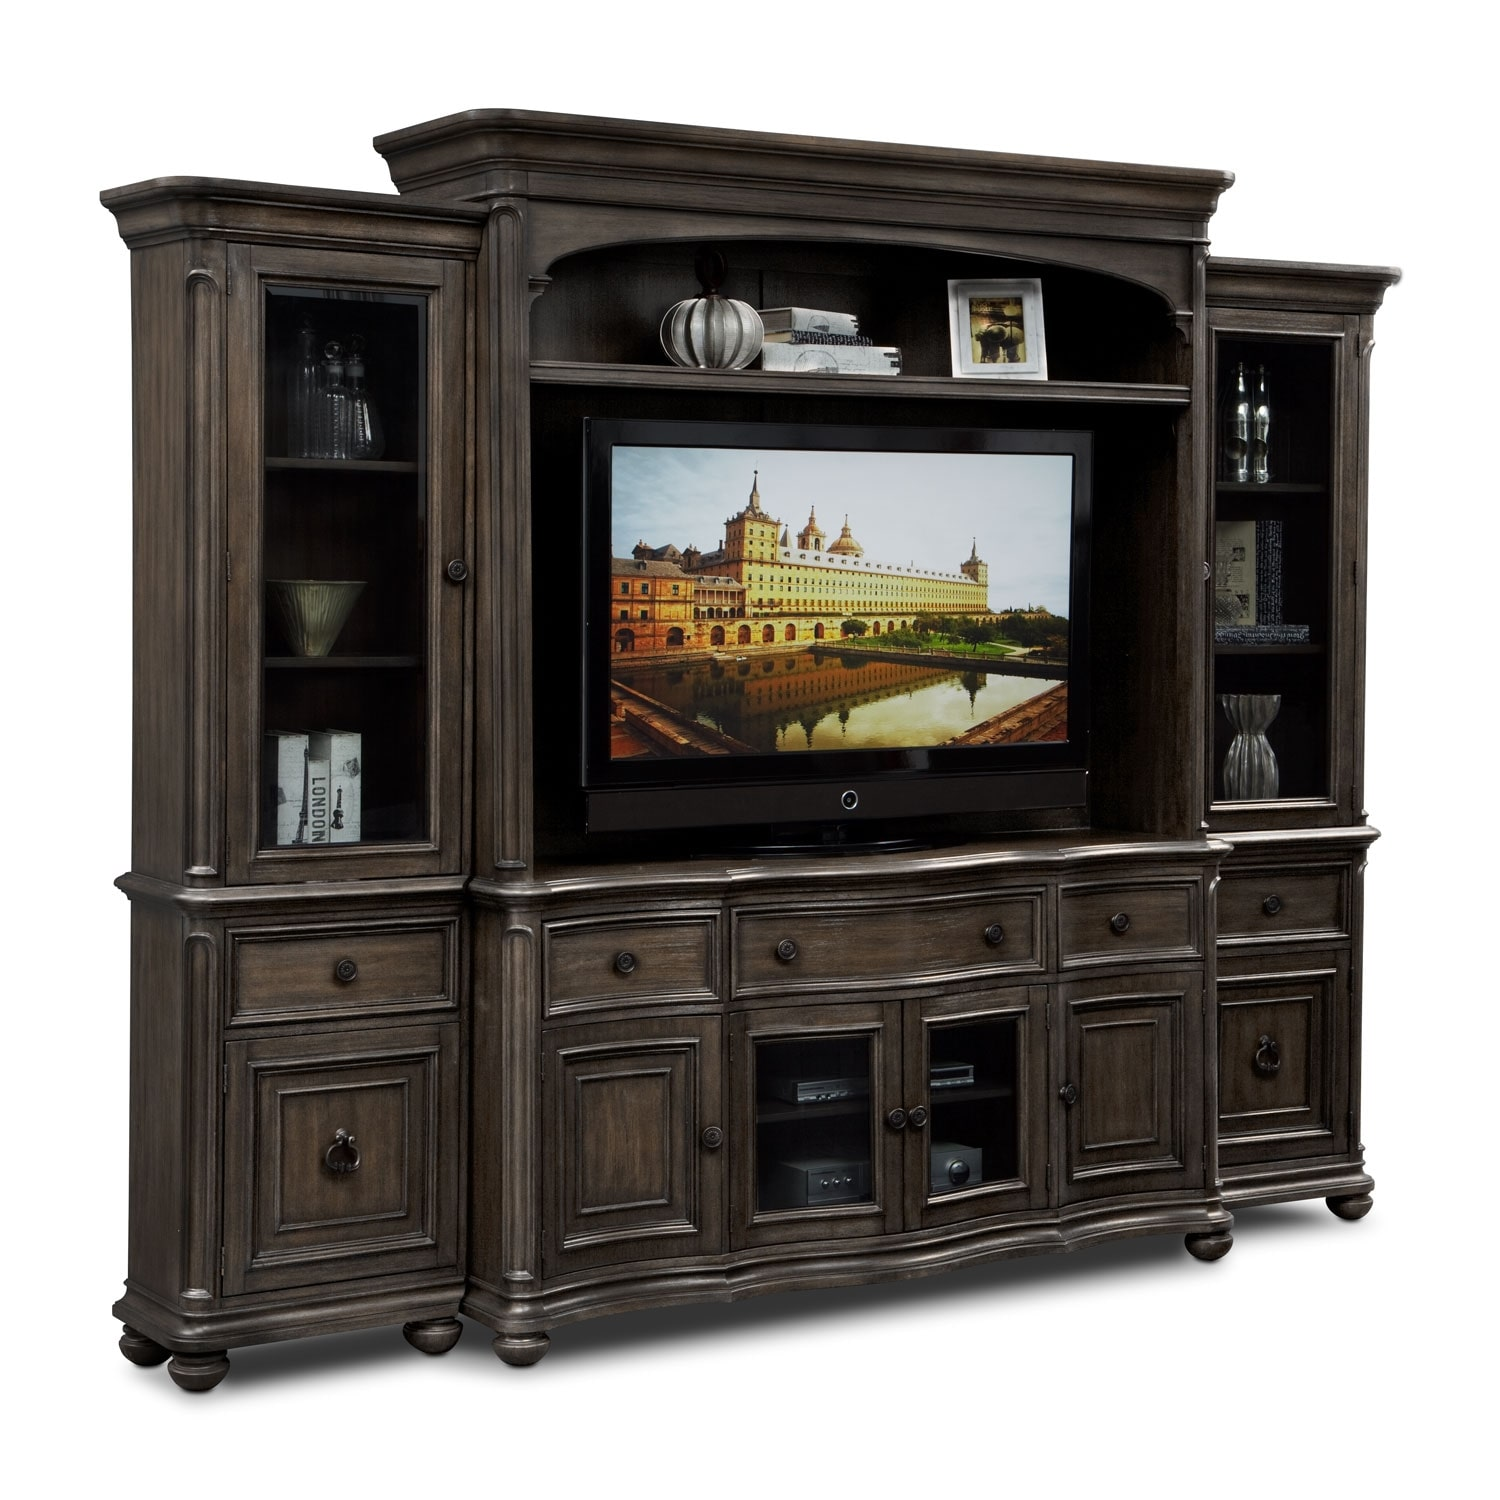 Highland Entertainment Wall Units 4 Pc Entertainment Wall: wall unit furniture